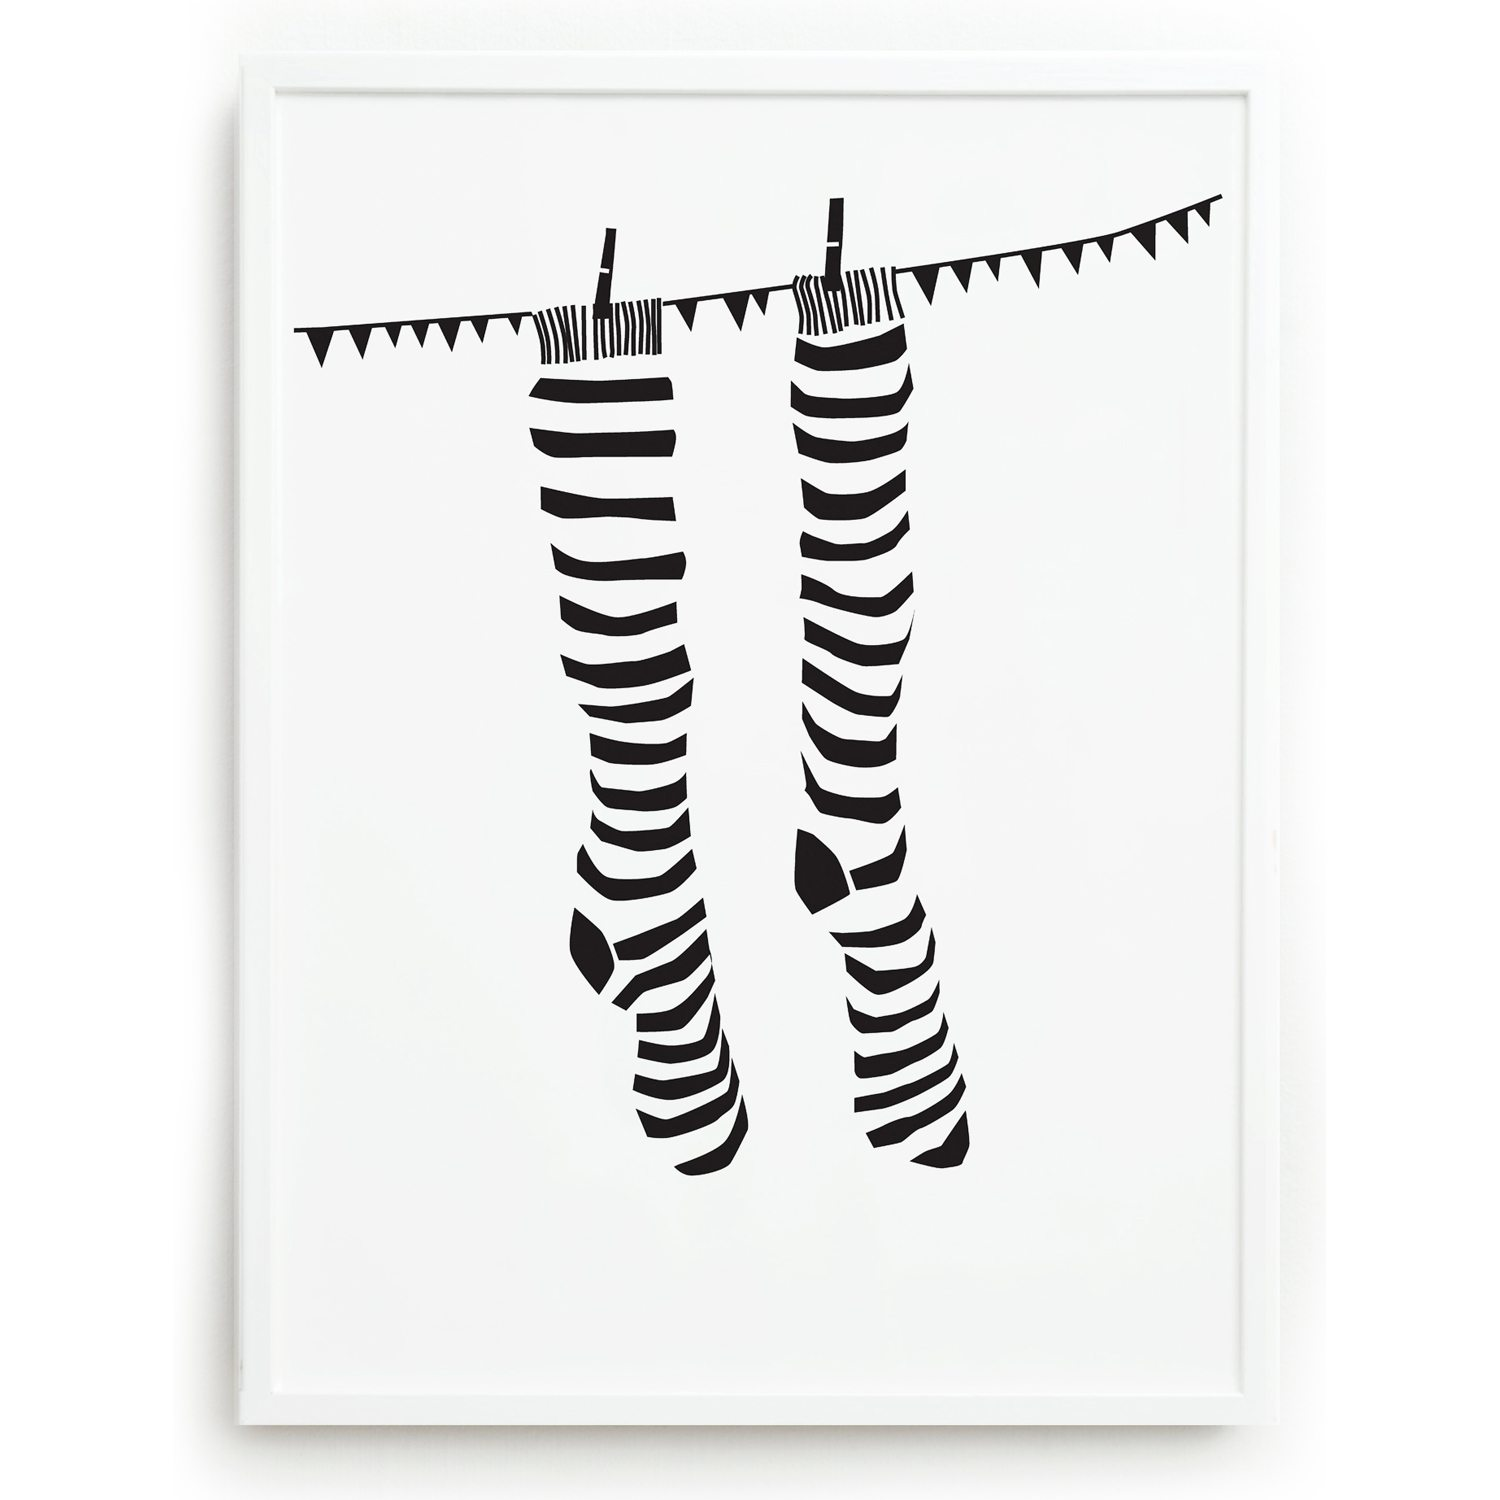 Knock Your Socks Off plakat – One Must Dash – Køb møbler online pÃ¥ ...